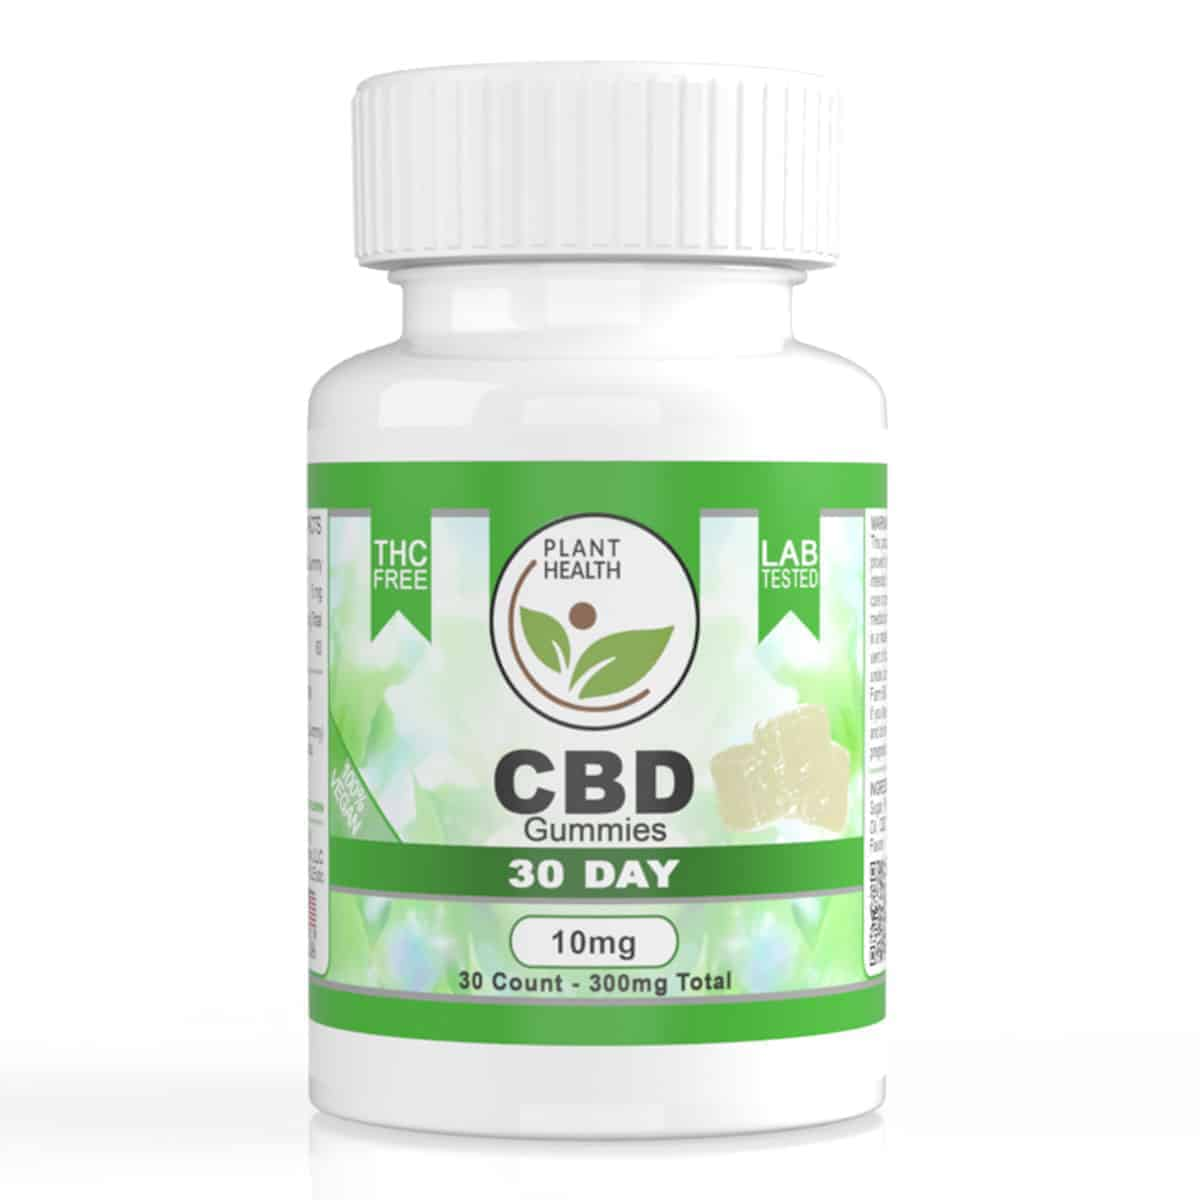 PLANT-HEALTH-10MG-CBD-GUMMIES-30-DAY-30-COUNT-300MG-TOTAL--F